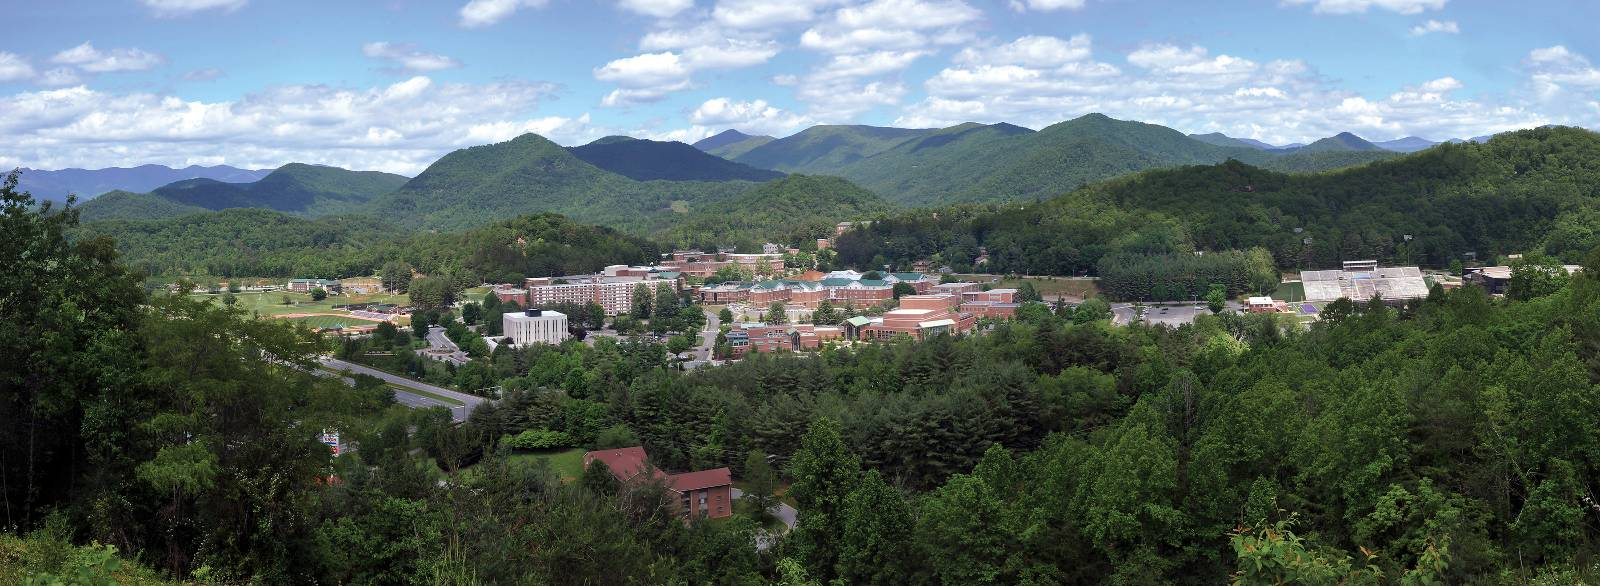 western carolina university cullowhee nc